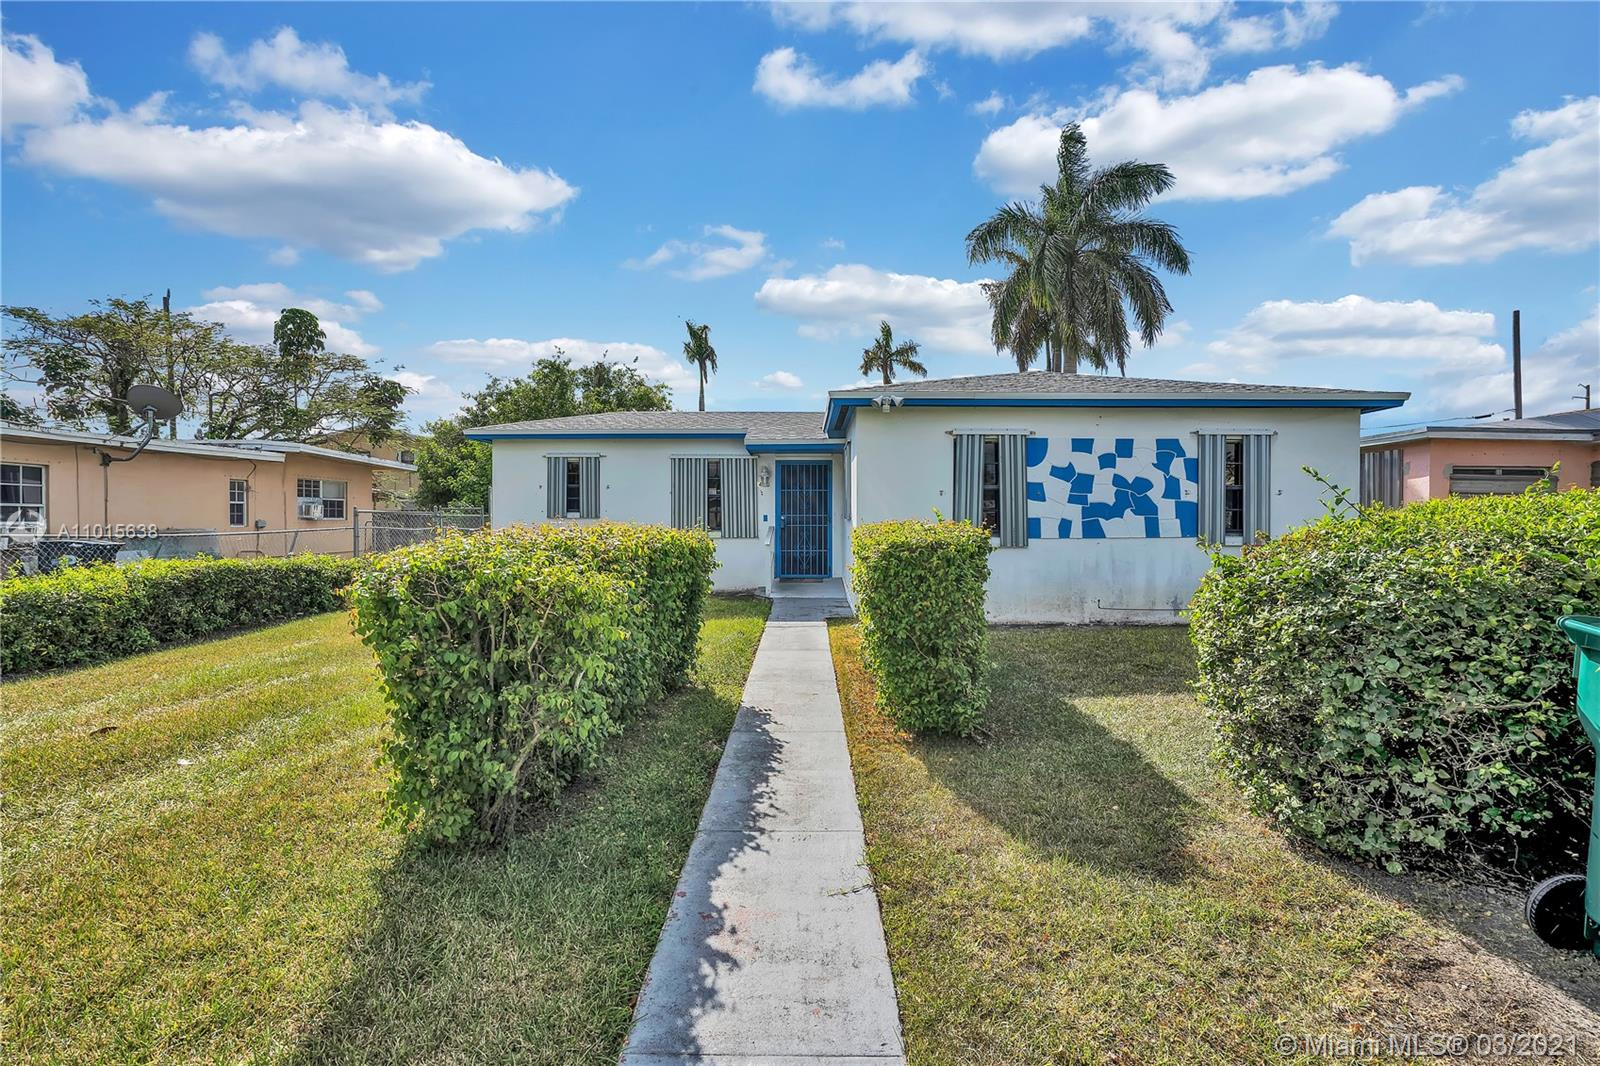 1470 NW 1st Ave Property Photo - Florida City, FL real estate listing